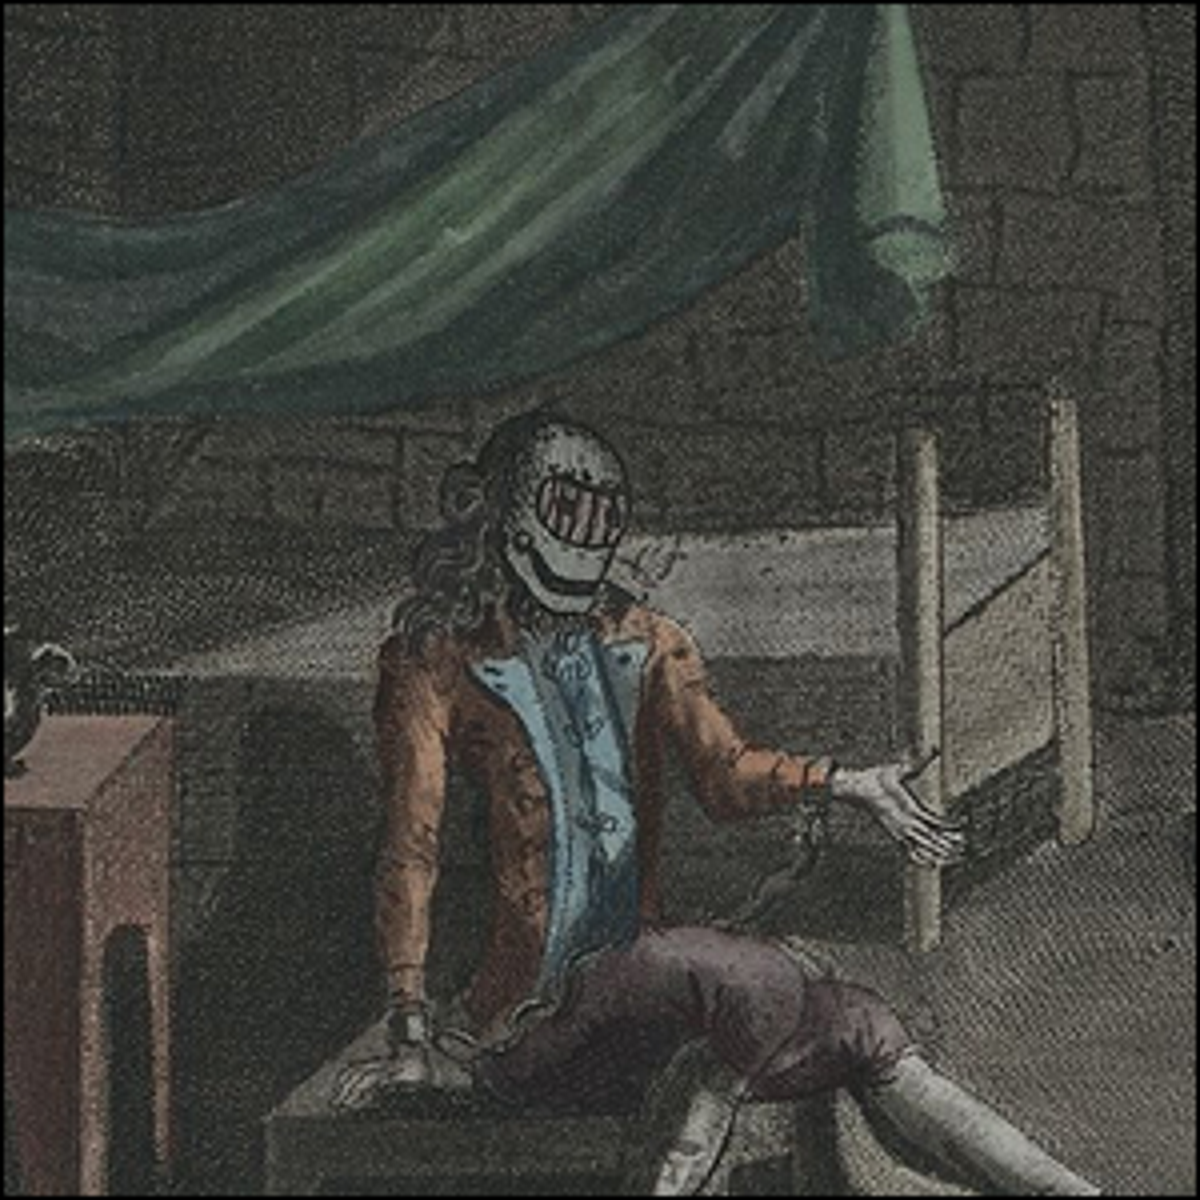 An old lithographic print of The Man in the Iron Mask.